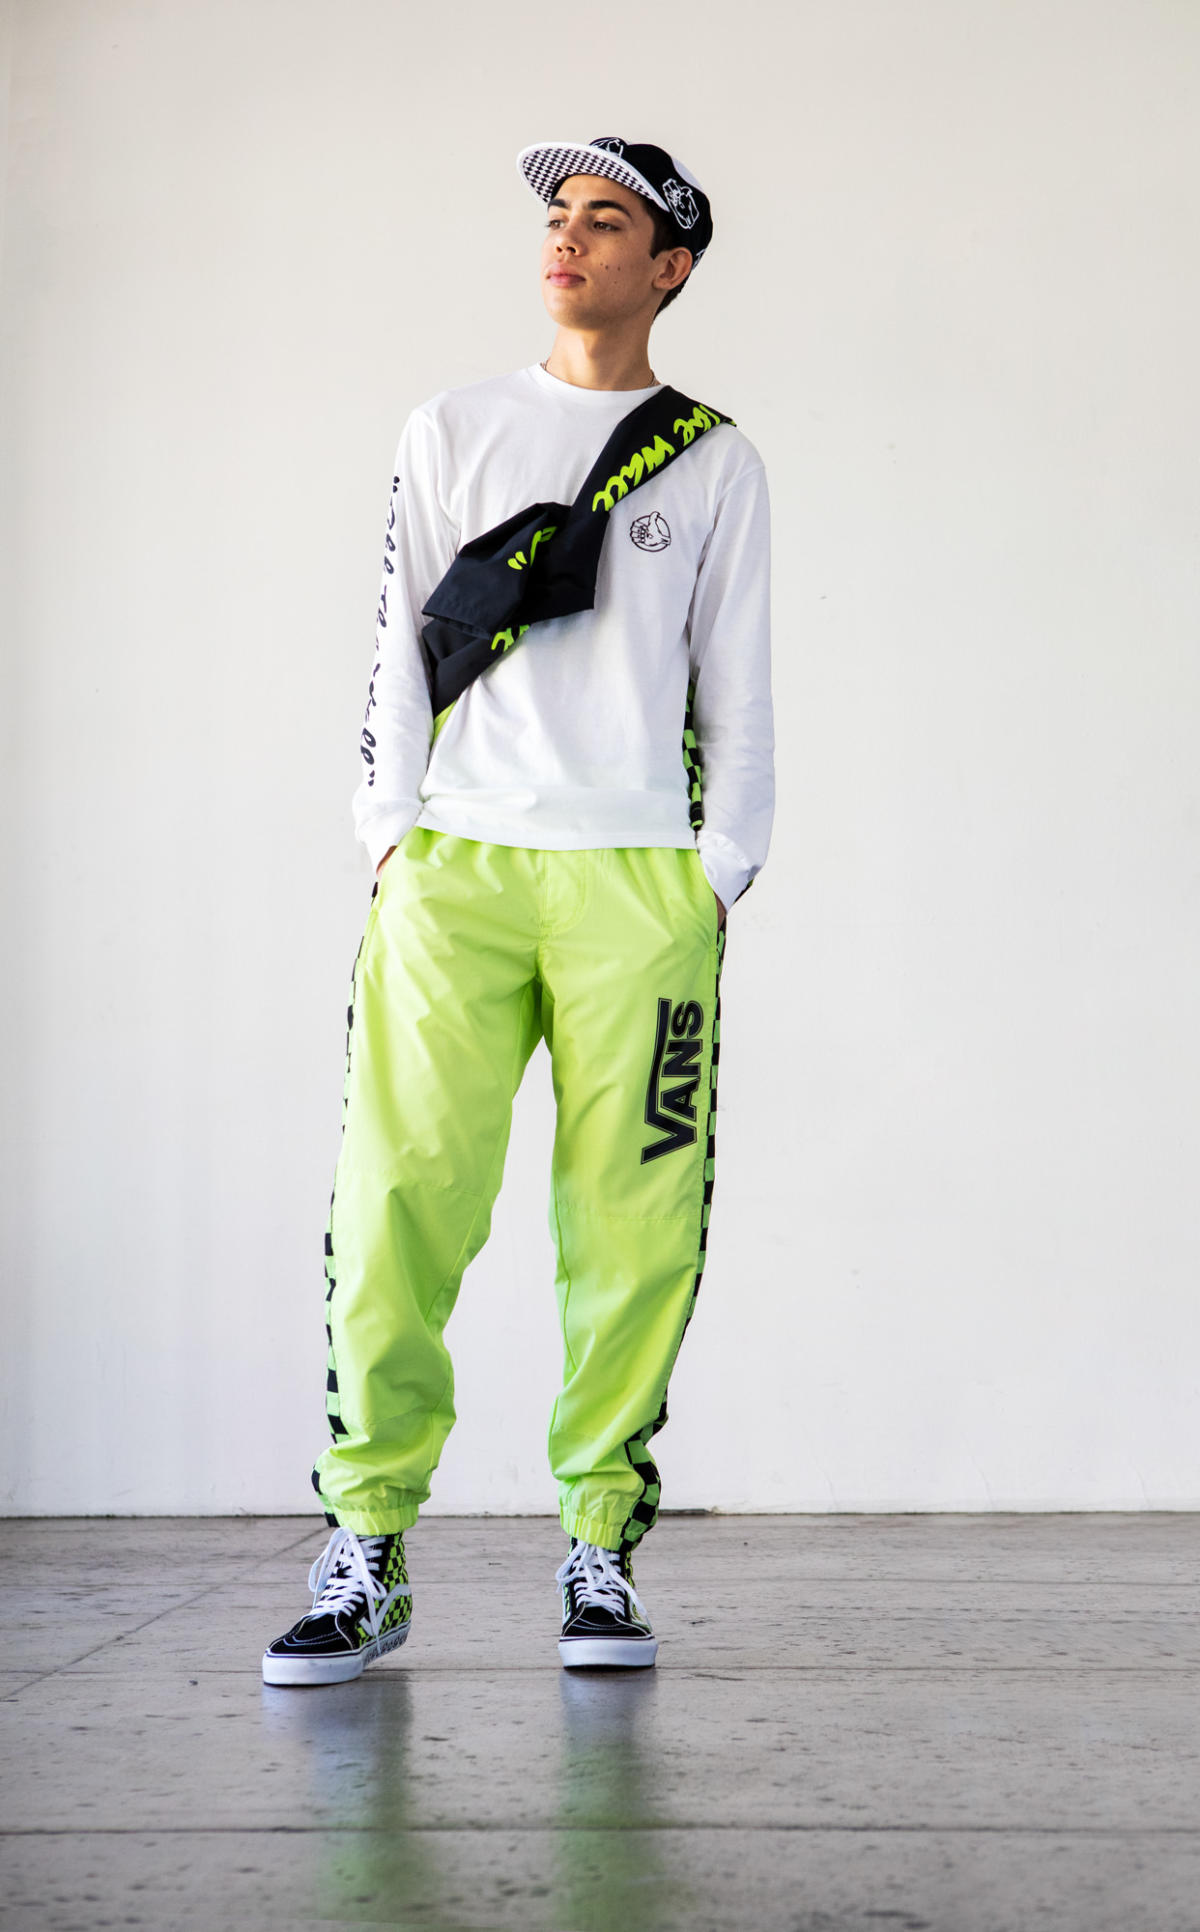 FA19_Classics_BMX40th_MENS_NORA_LOOK_01_1286